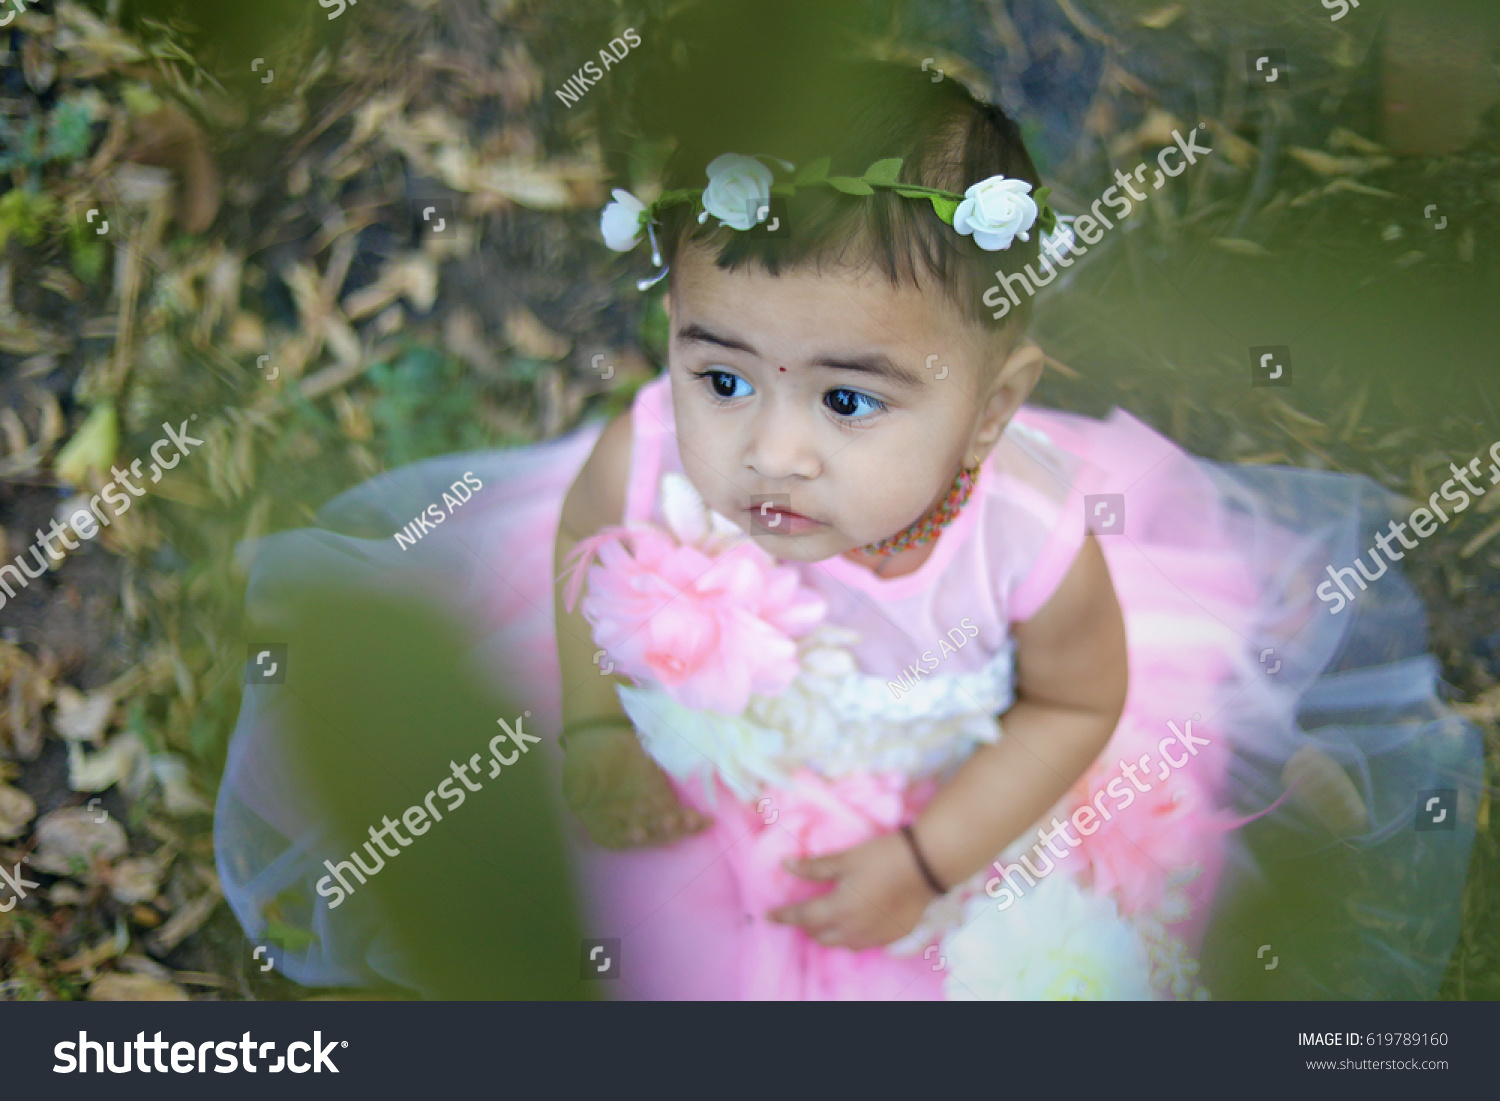 cute indian baby girl stock photo (edit now) 619789160 - shutterstock